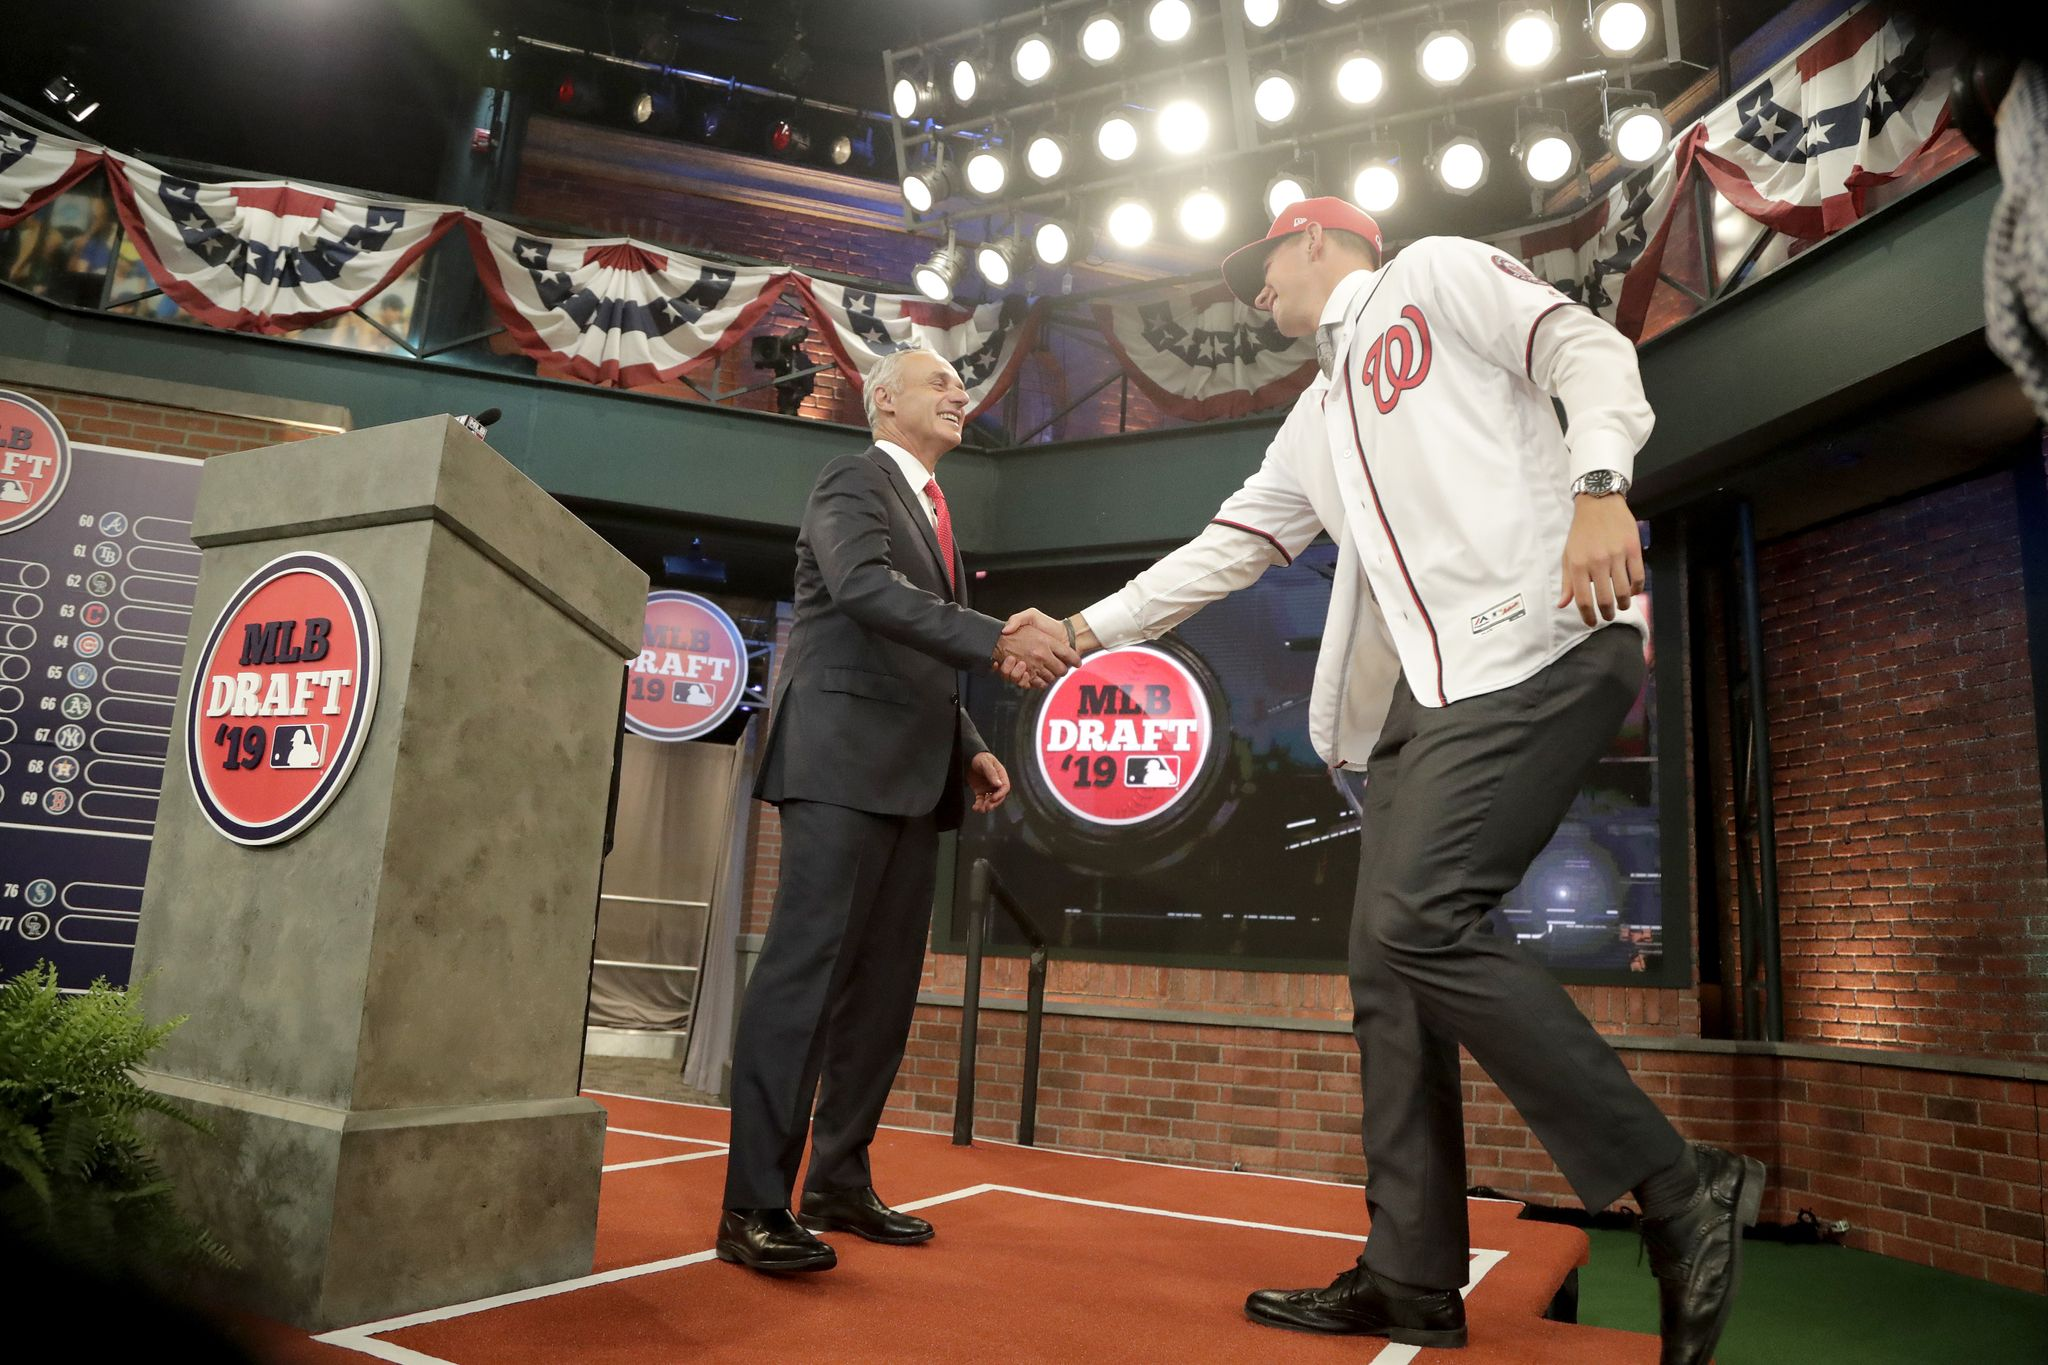 Nationals' top draft pick Rutledge signs